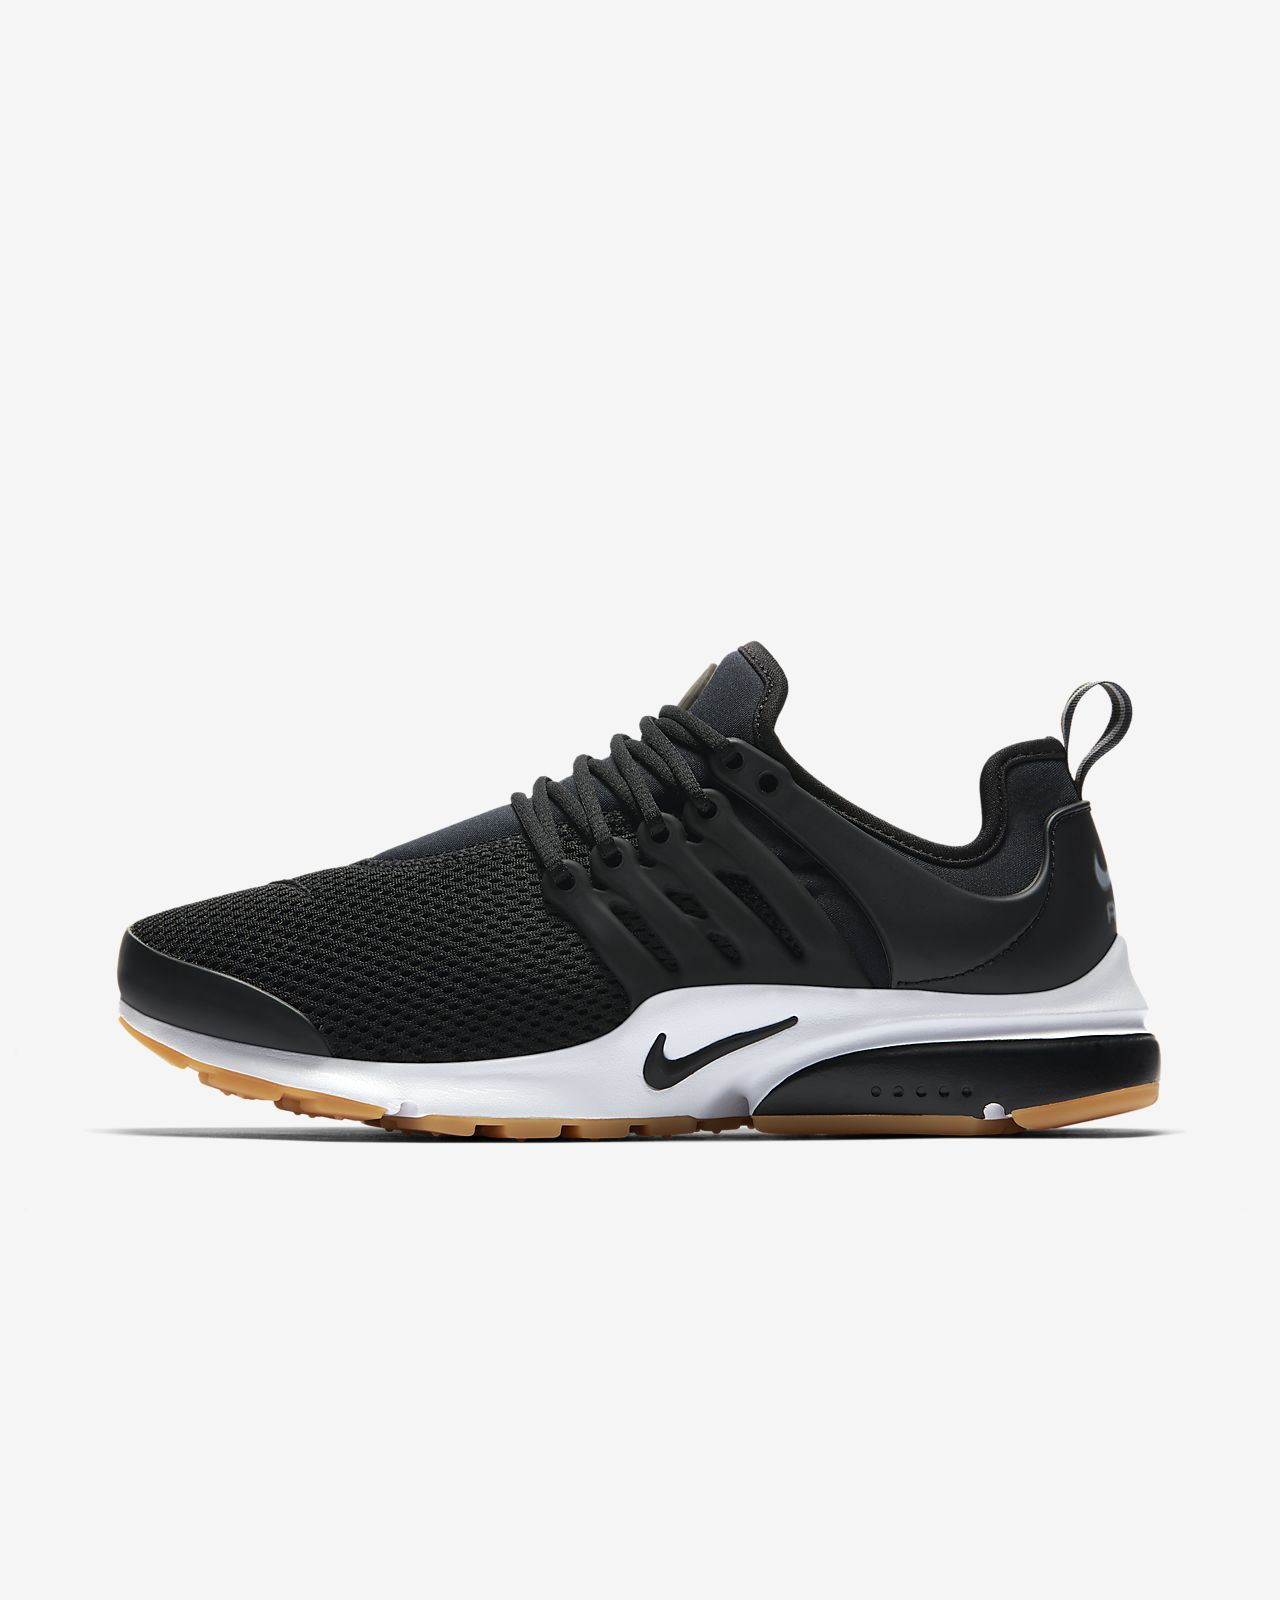 watch 3a102 50f67 ... Nike Air Presto Women s Shoe